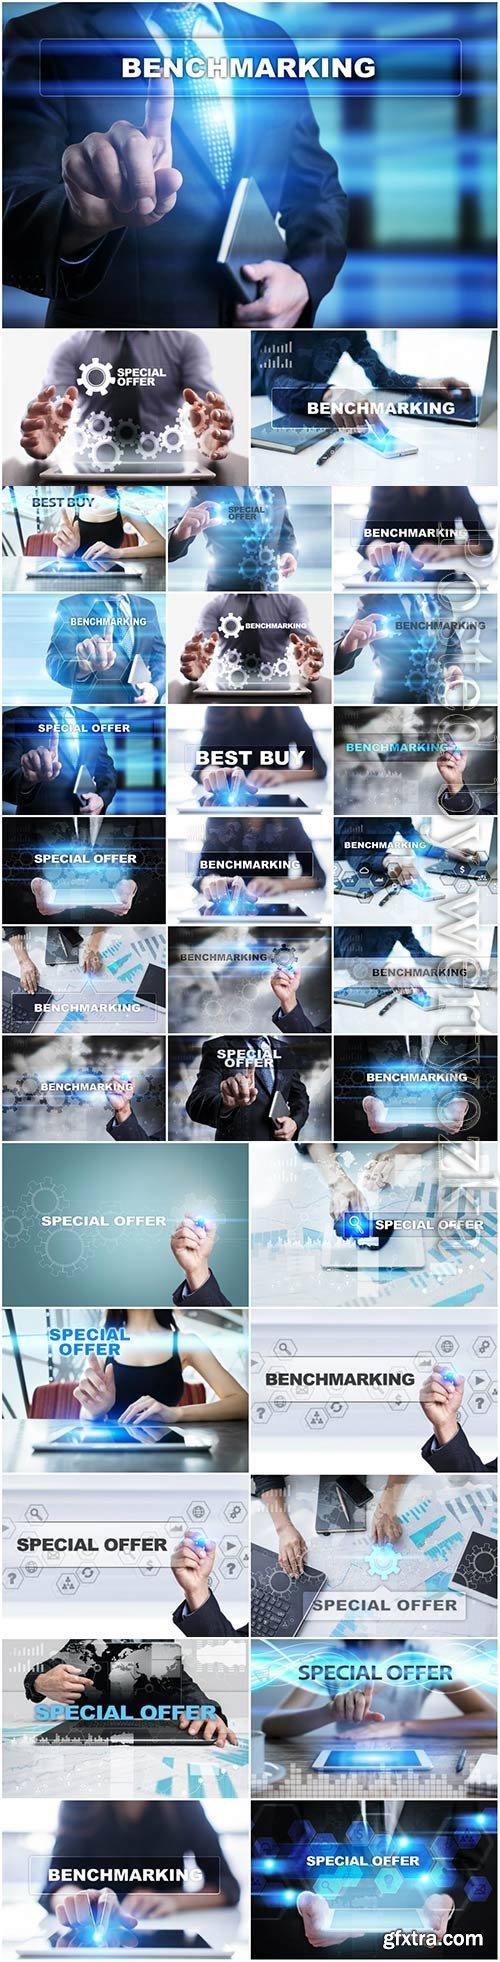 Modern technology and business concept stock photo